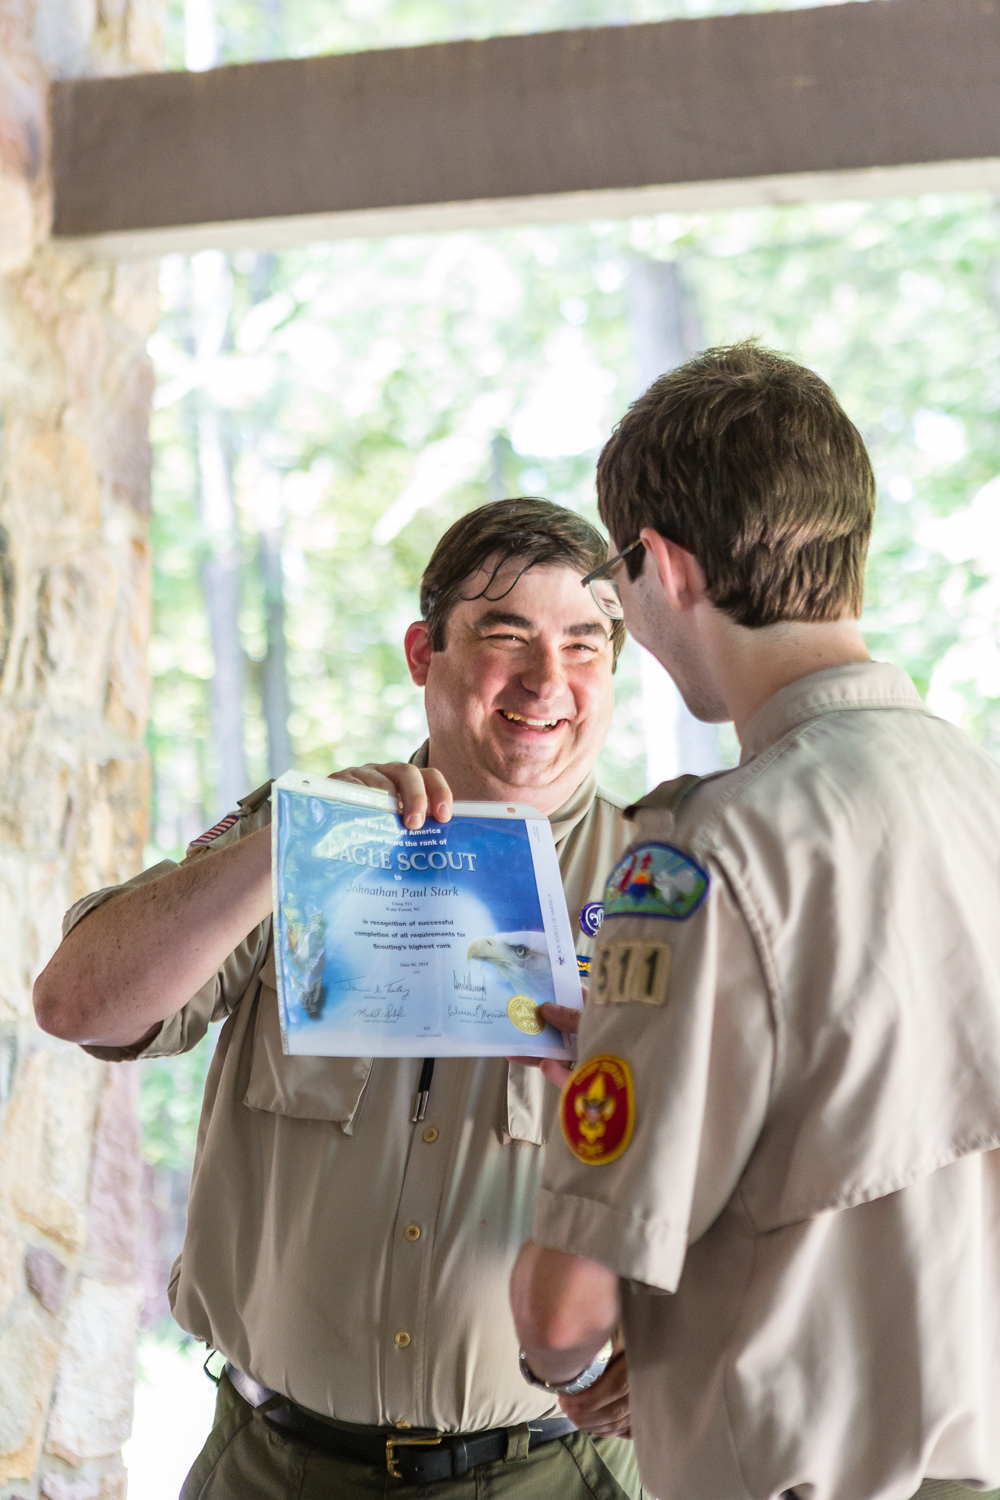 eagle-scout-ceremony-09.jpg